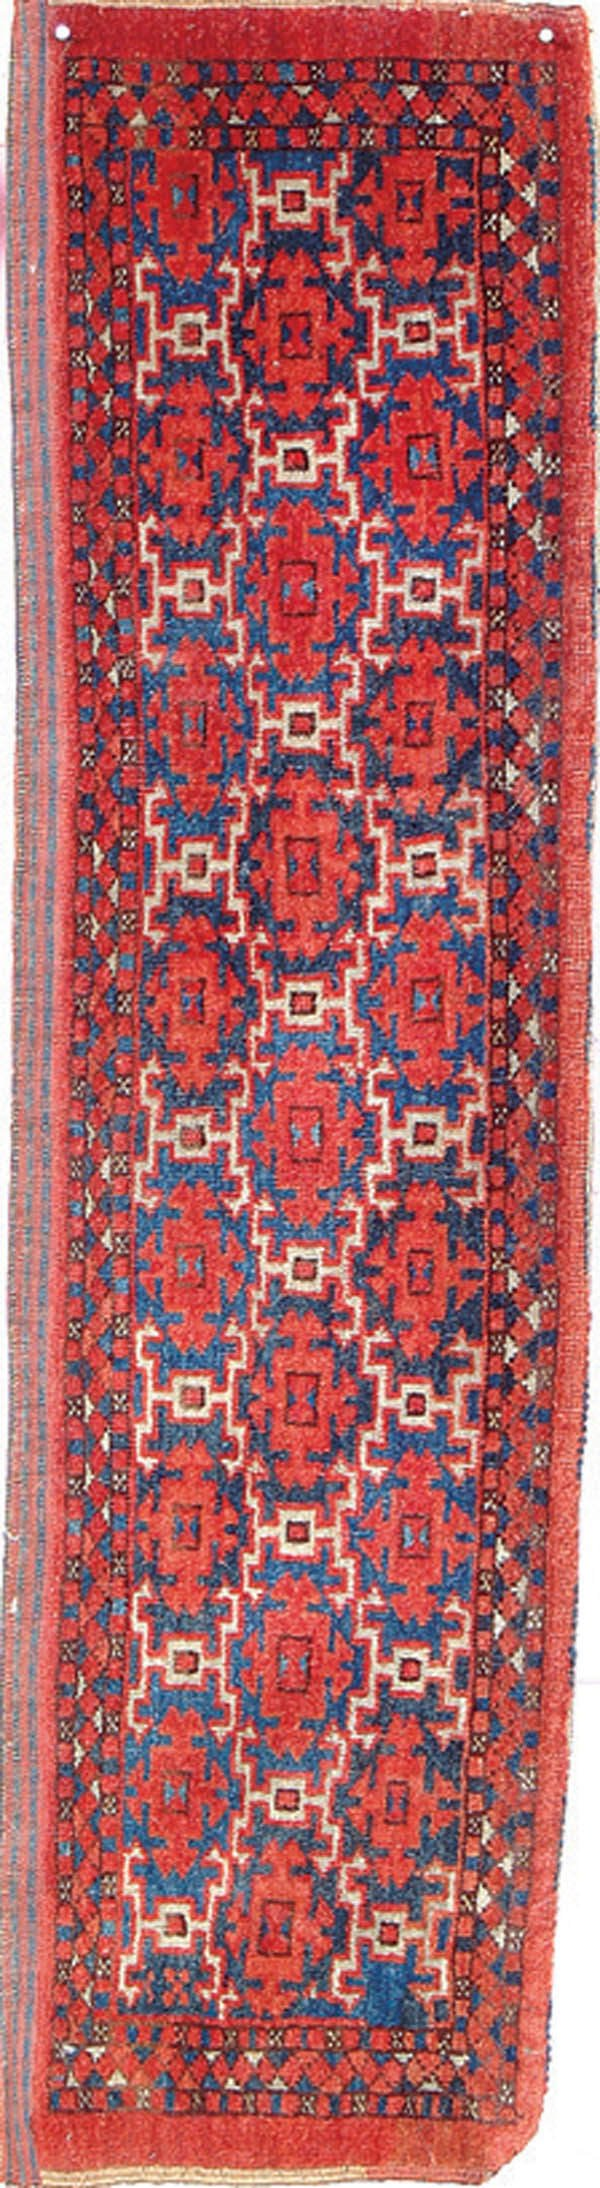 826: A SMALL ORIENTAL RUNNER HAND WOVEN 13 inches x 49